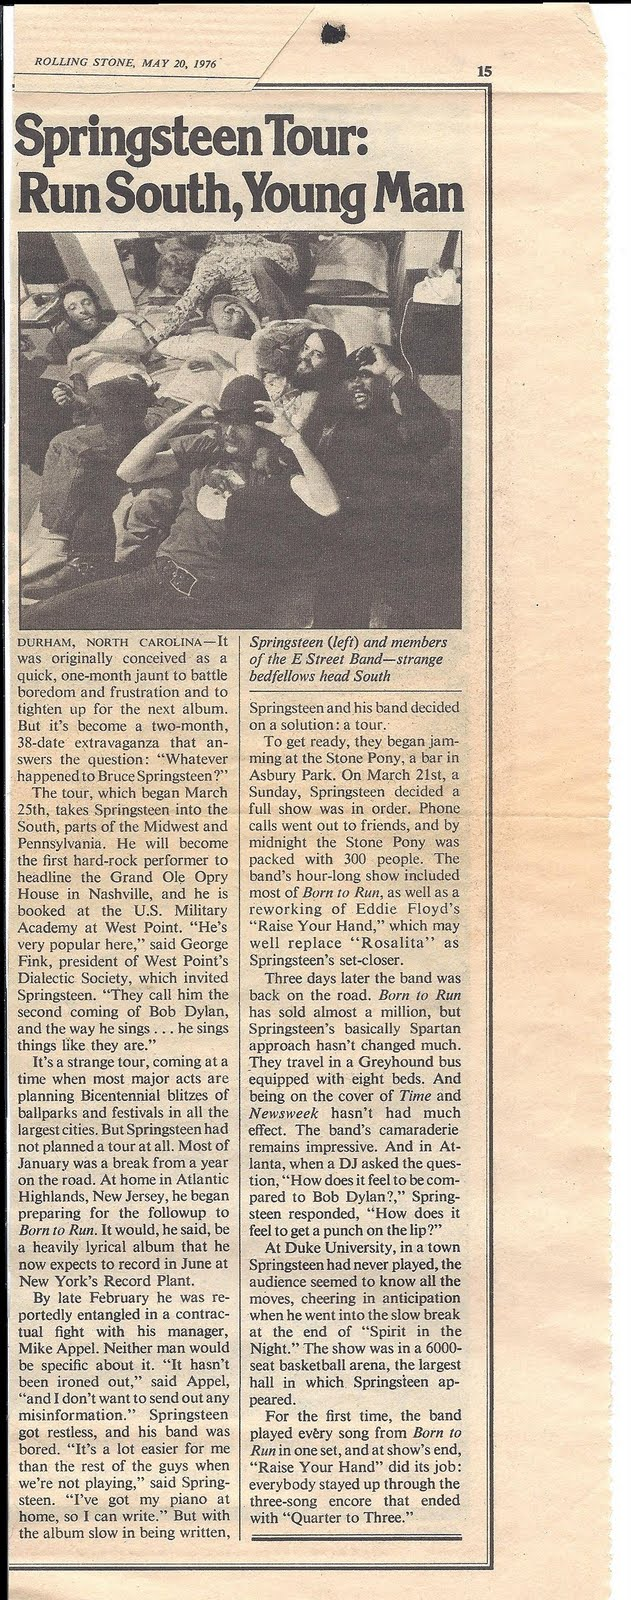 Rolling_Stone_Springsteen_Clipping_May_20_1976